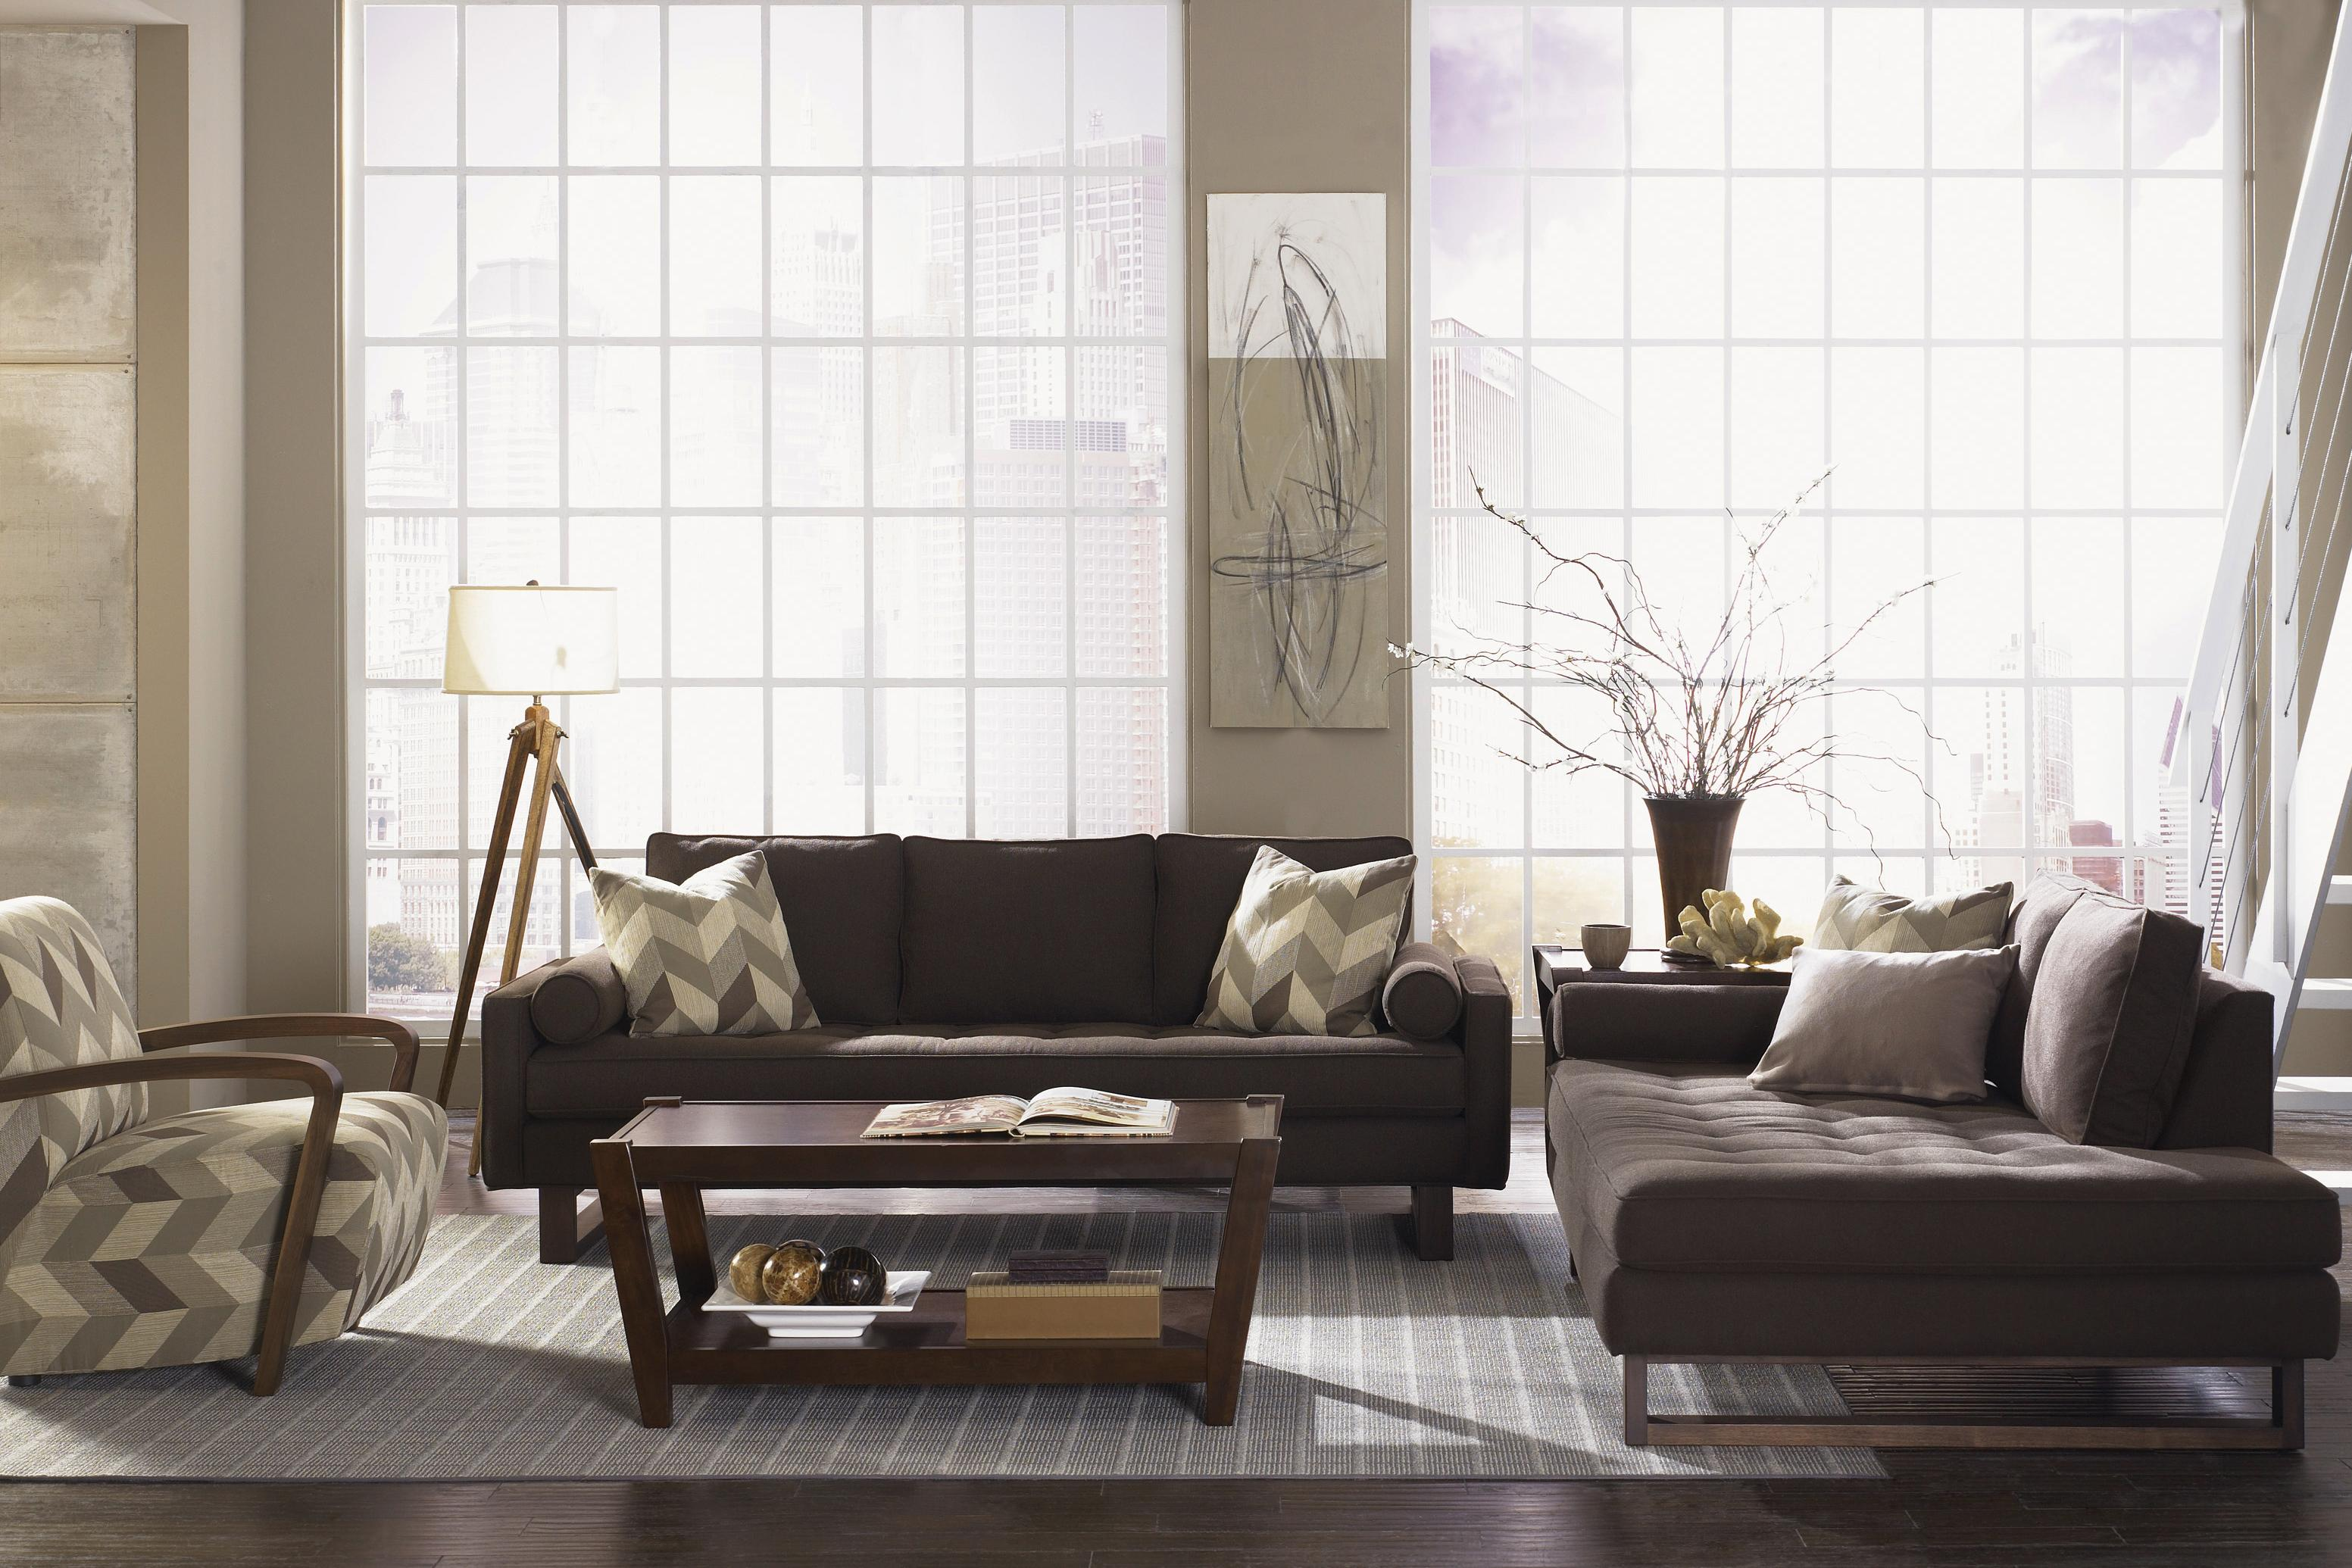 Attractive Jonathan Louis Bennett Low Track Arm Tufted Seat Sofa With Exposed Wood  Legs   Pilgrim Furniture City   Sofas